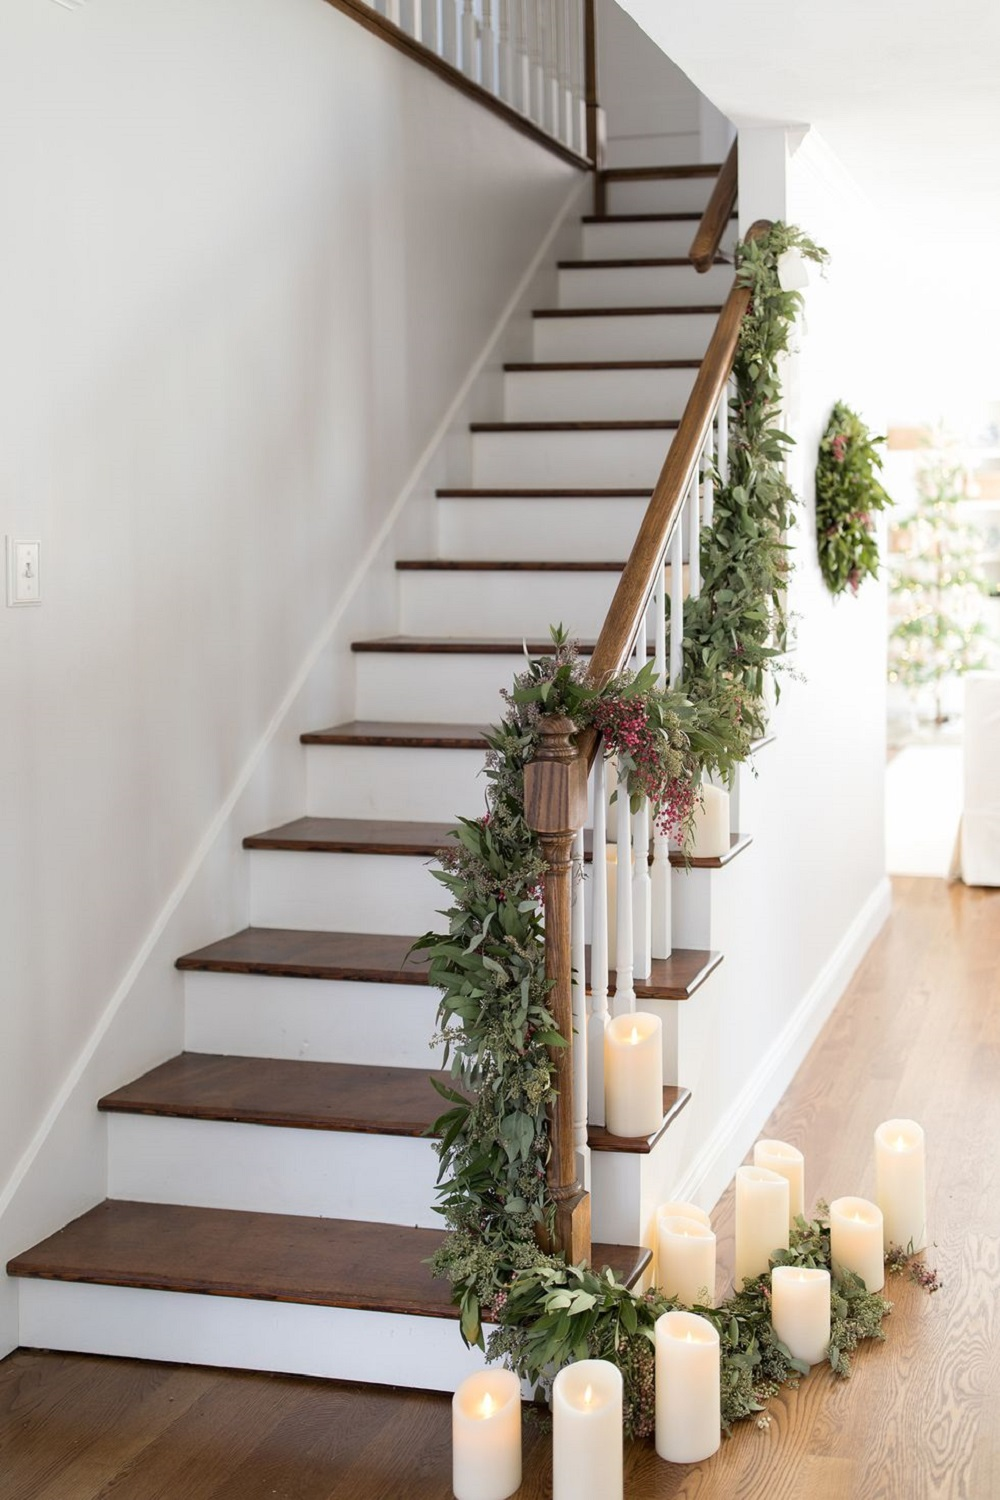 t3-126 Great ideas for decorating Christmas stairs that you should definitely try